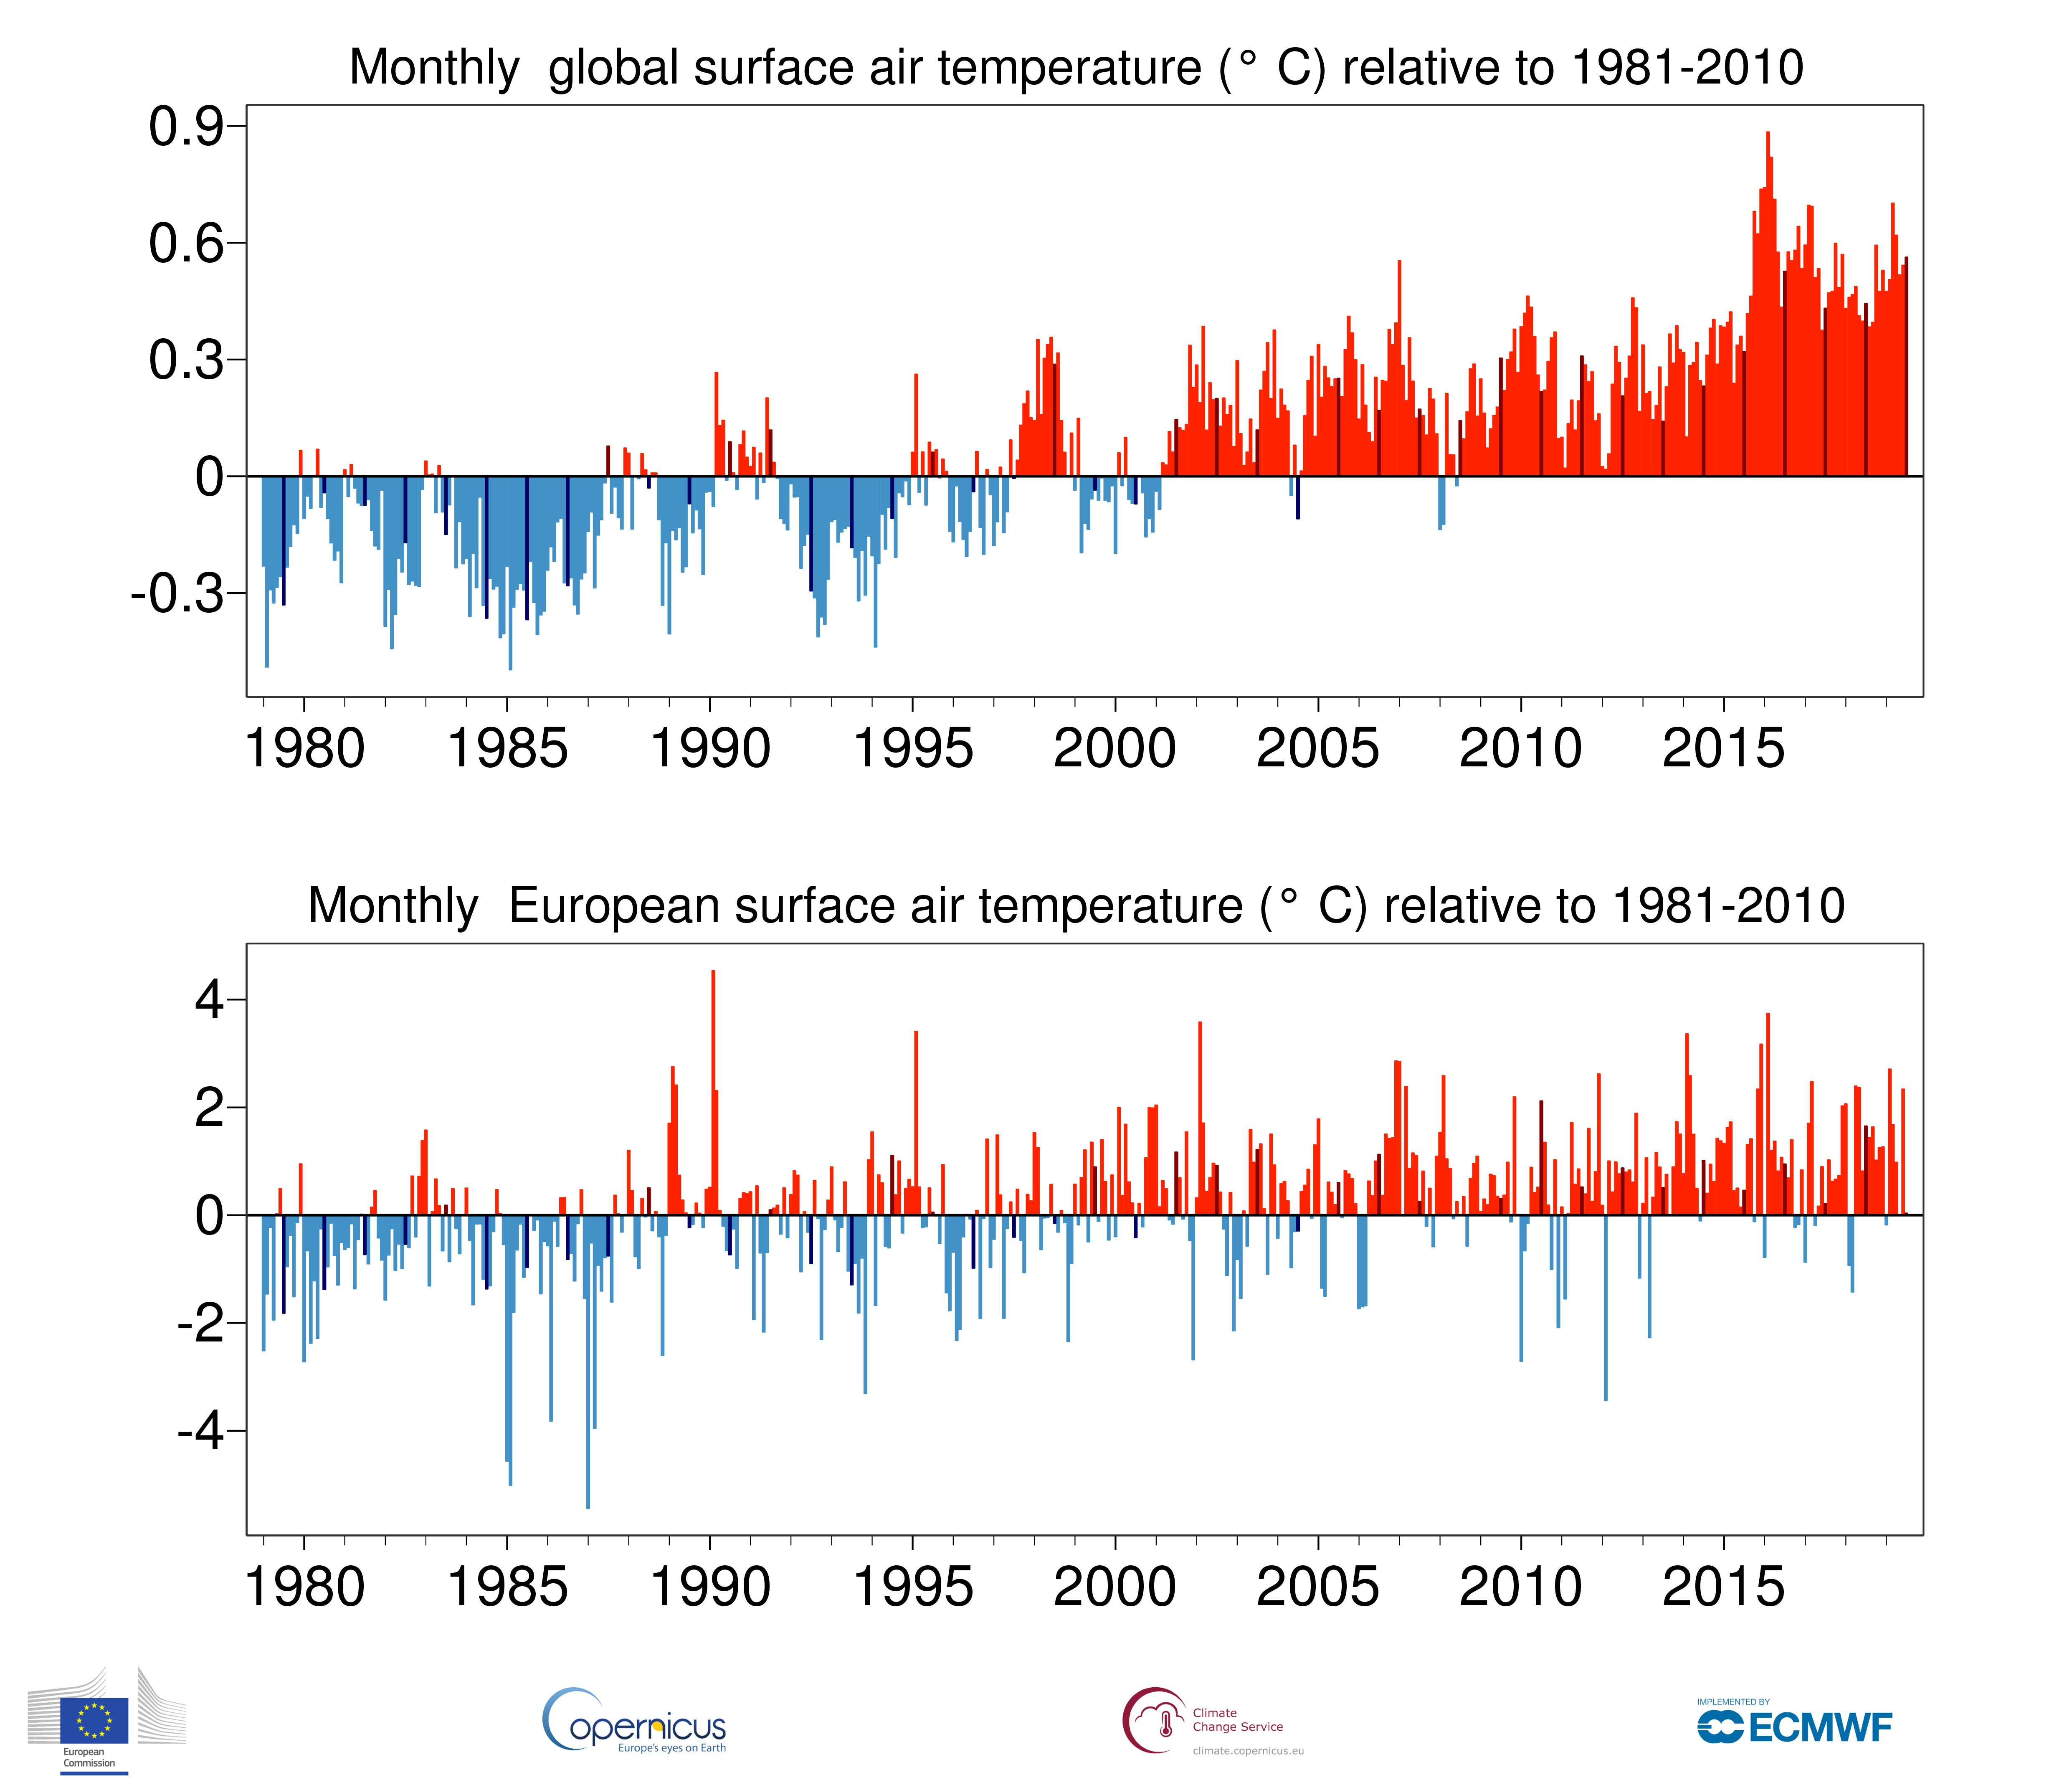 Scientific studies link July heat wave in Europe to climate change